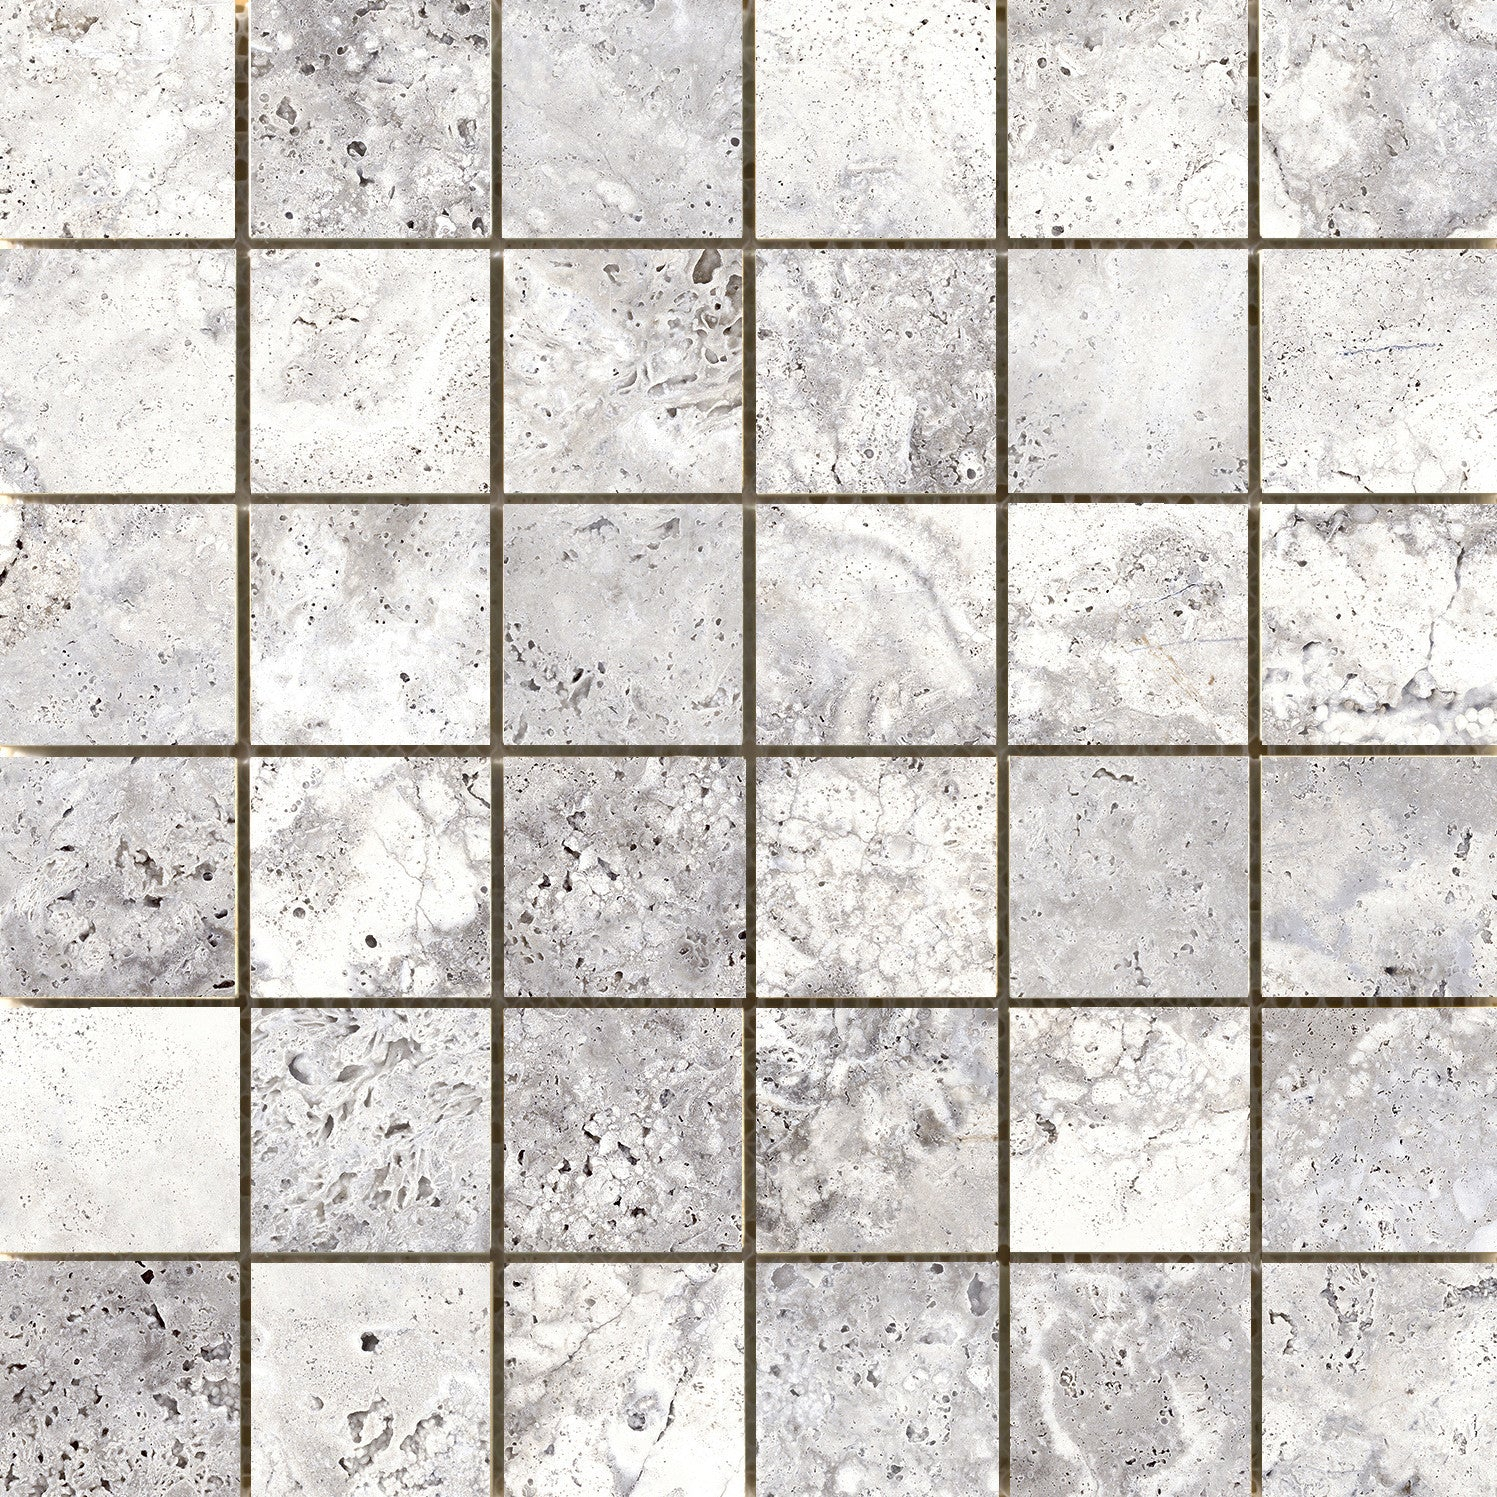 Cabo 2x2 on 13 x 13 mesh mosaic glazed ceramic tile by emser cabo 2x2 on 13 x 13 mesh mosaic glazed ceramic tile by emser dailygadgetfo Gallery